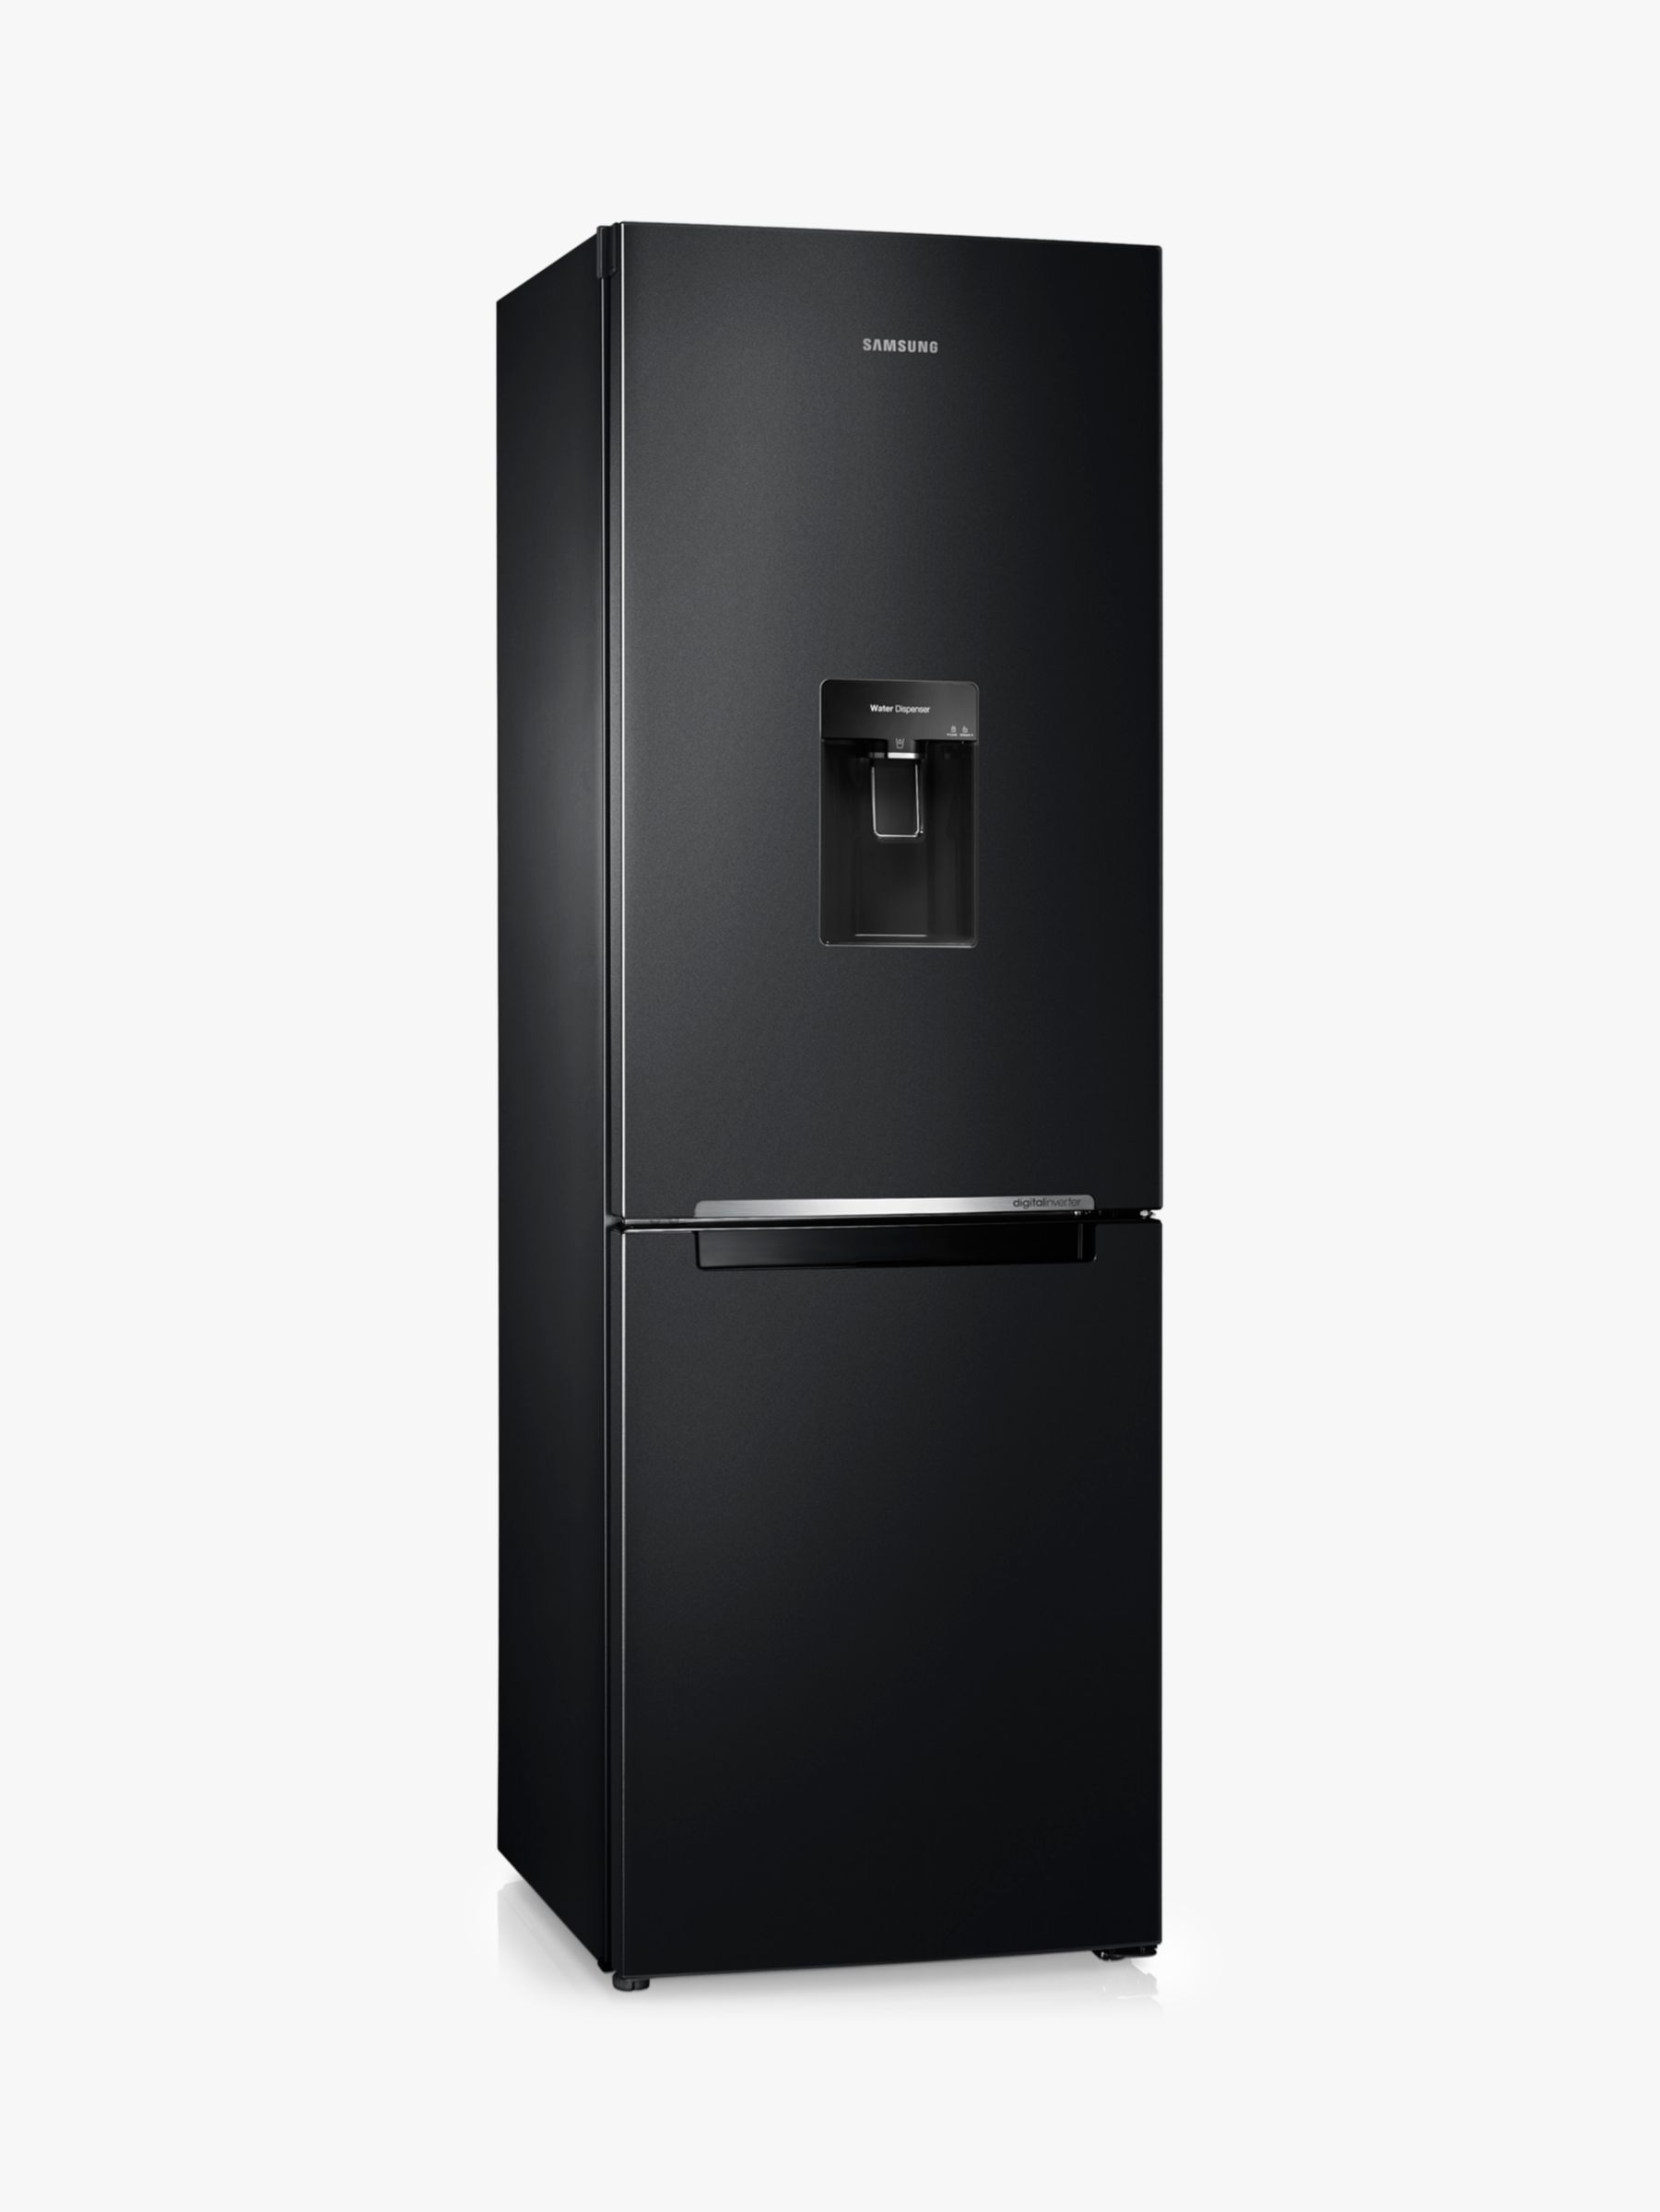 Fridge Freezer Samsung Rb29fwrndbc Fridge Freezer A Energy Rating 60cm Wide